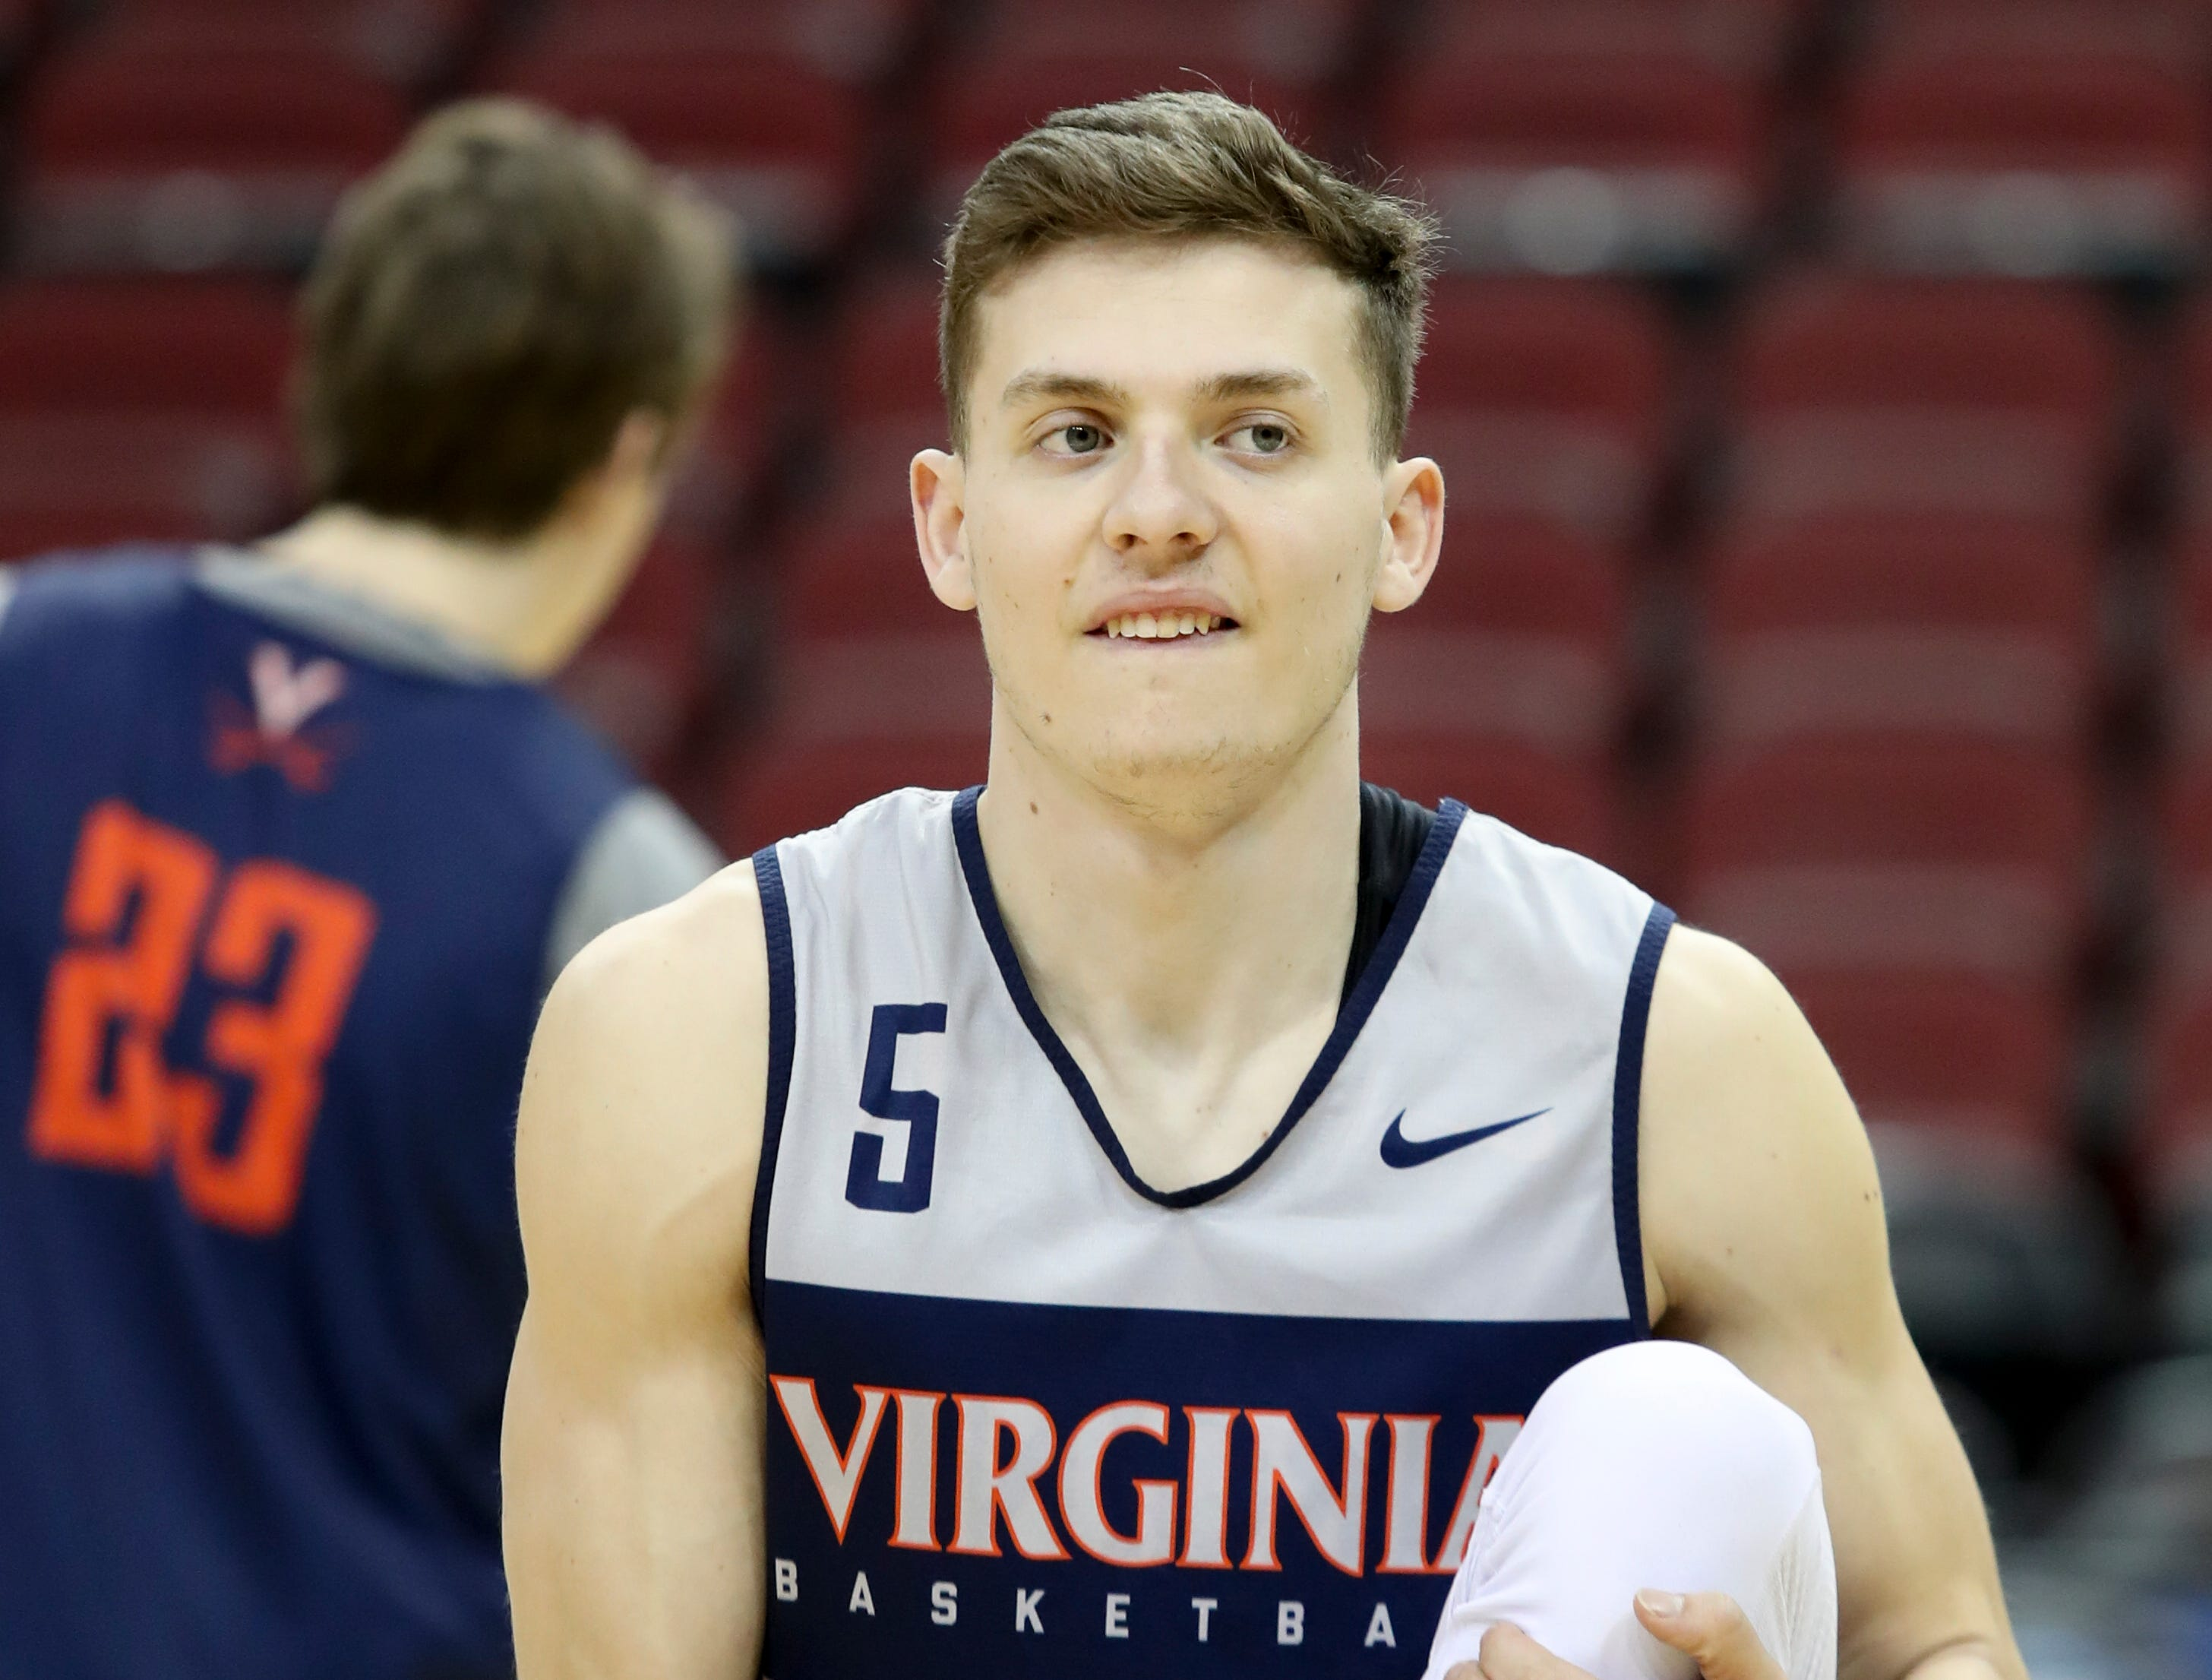 Virginia's Kyle Guy warms up during practice on March 27 at the KFC Yum Center in Louisville, Ky.